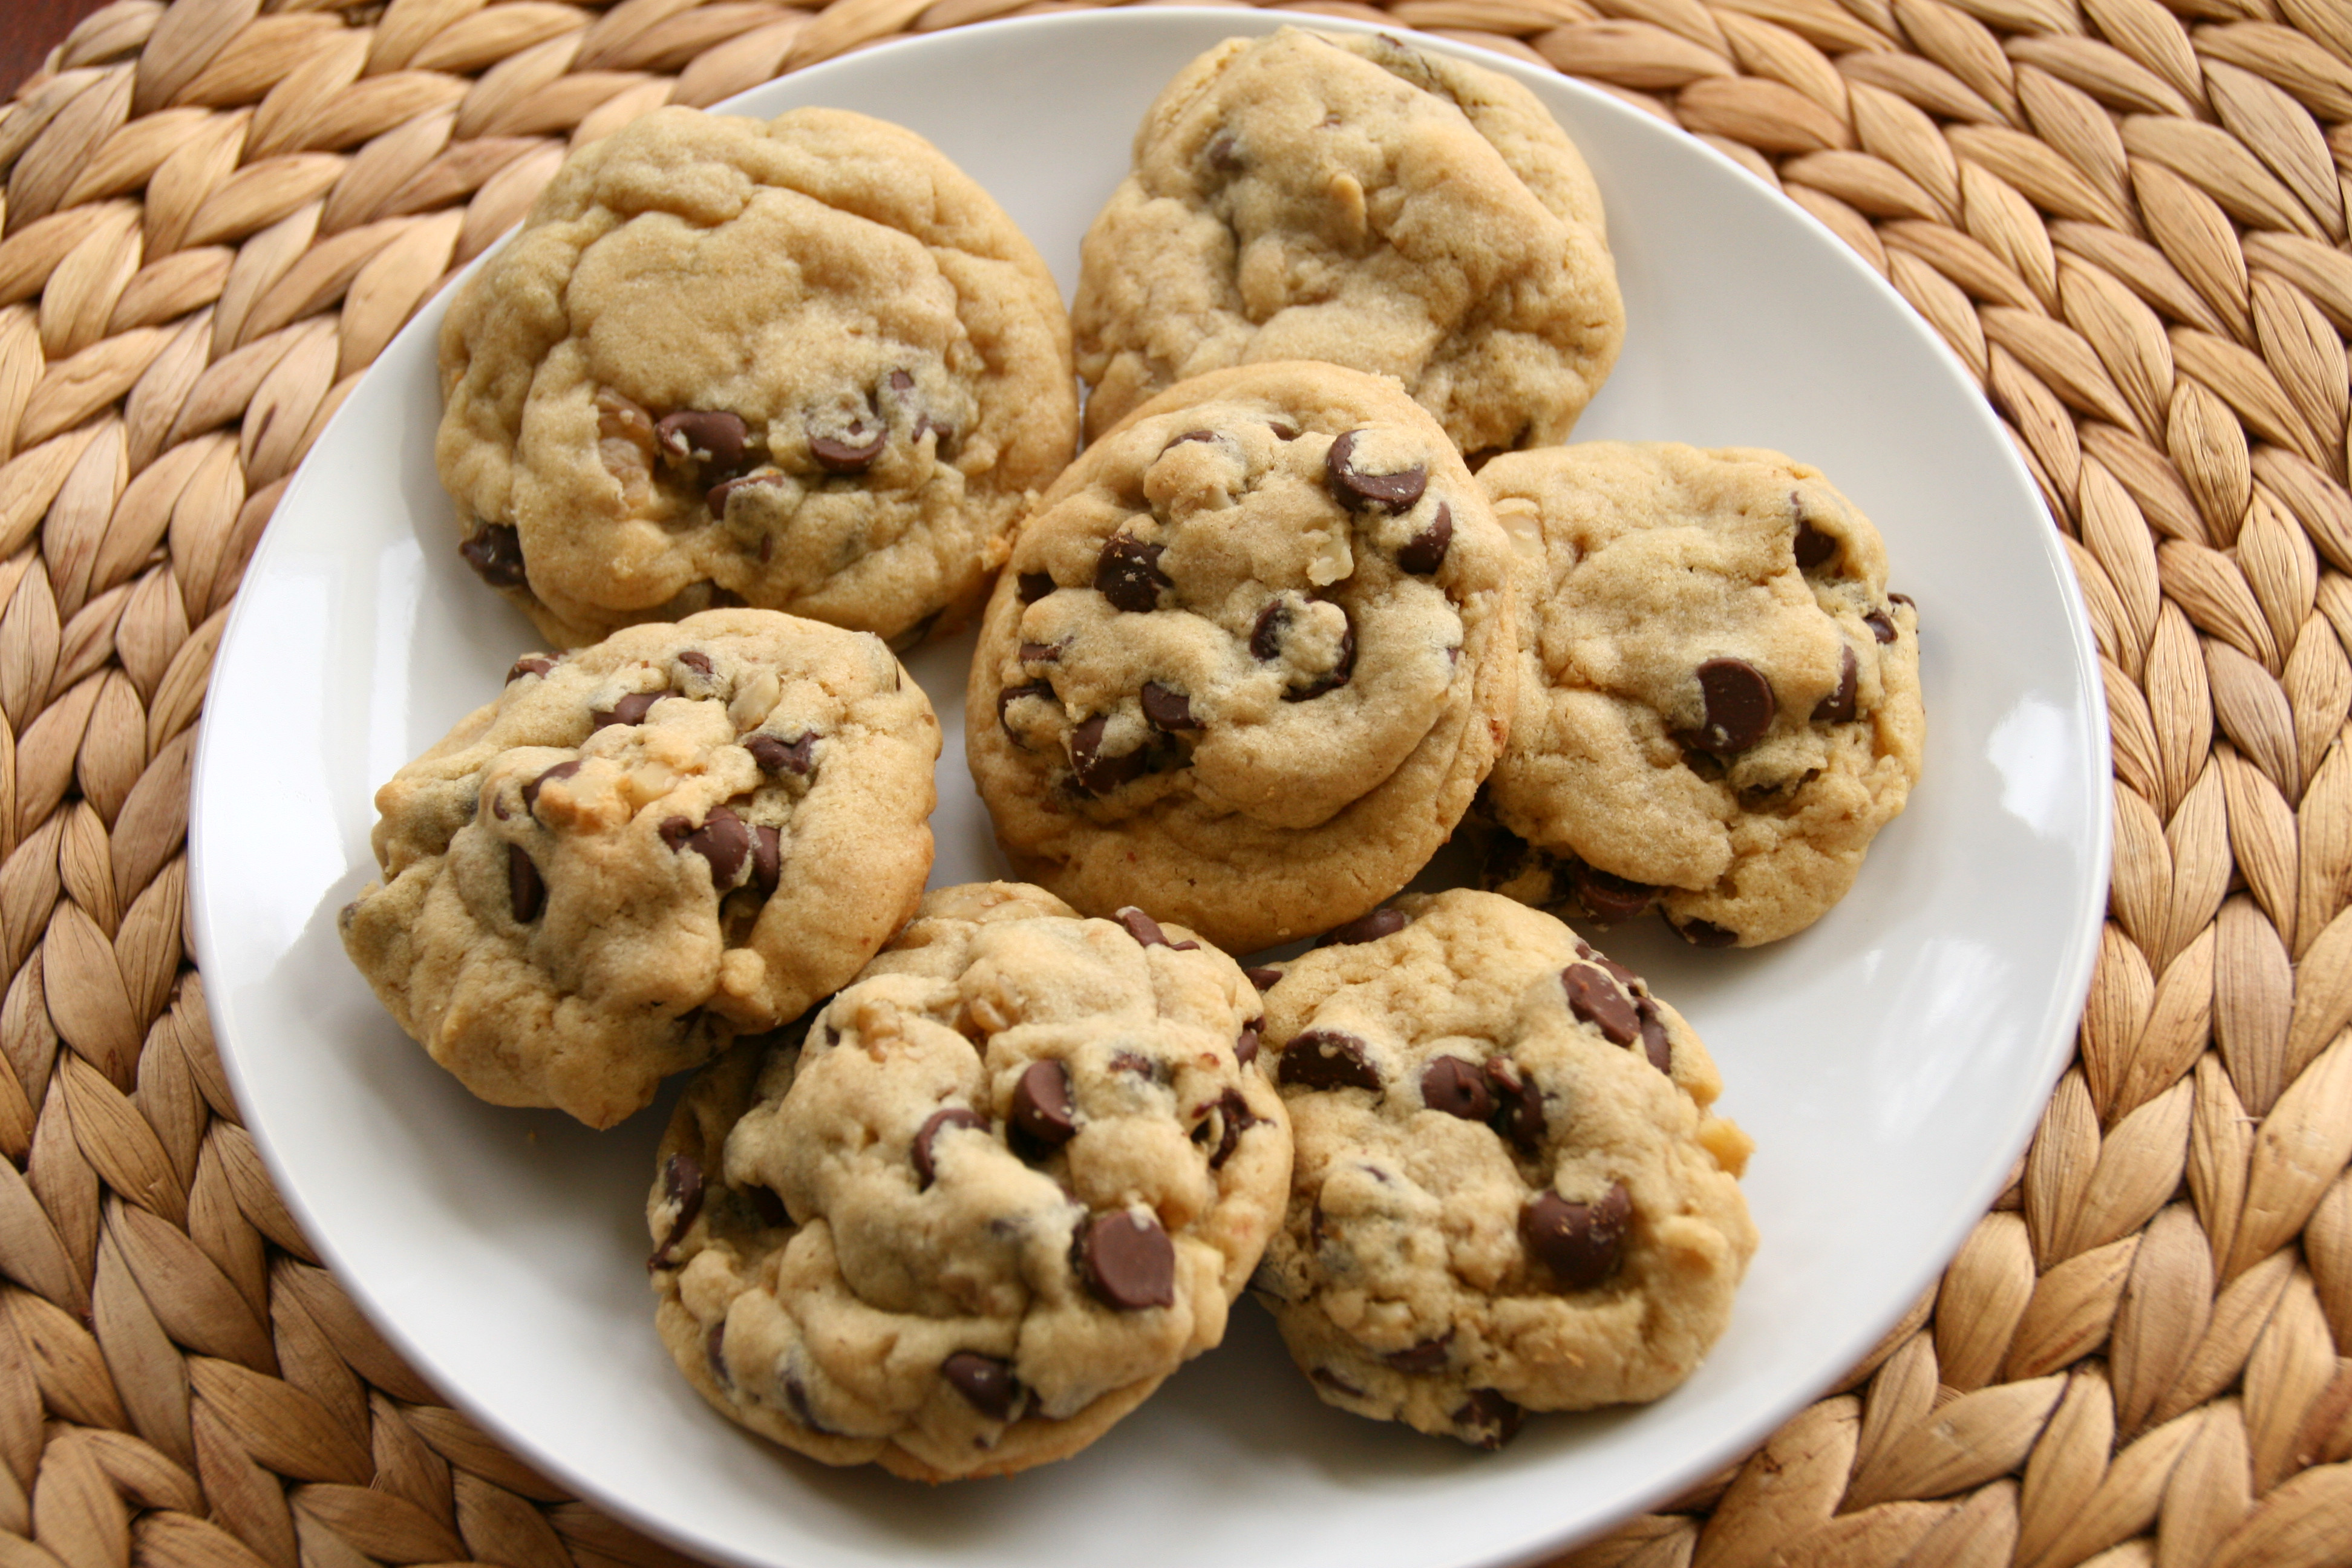 Chocolate Chip Cookies Recipe Healthy  My Favorite Chocolate Chip Cookie Recipe that isn t